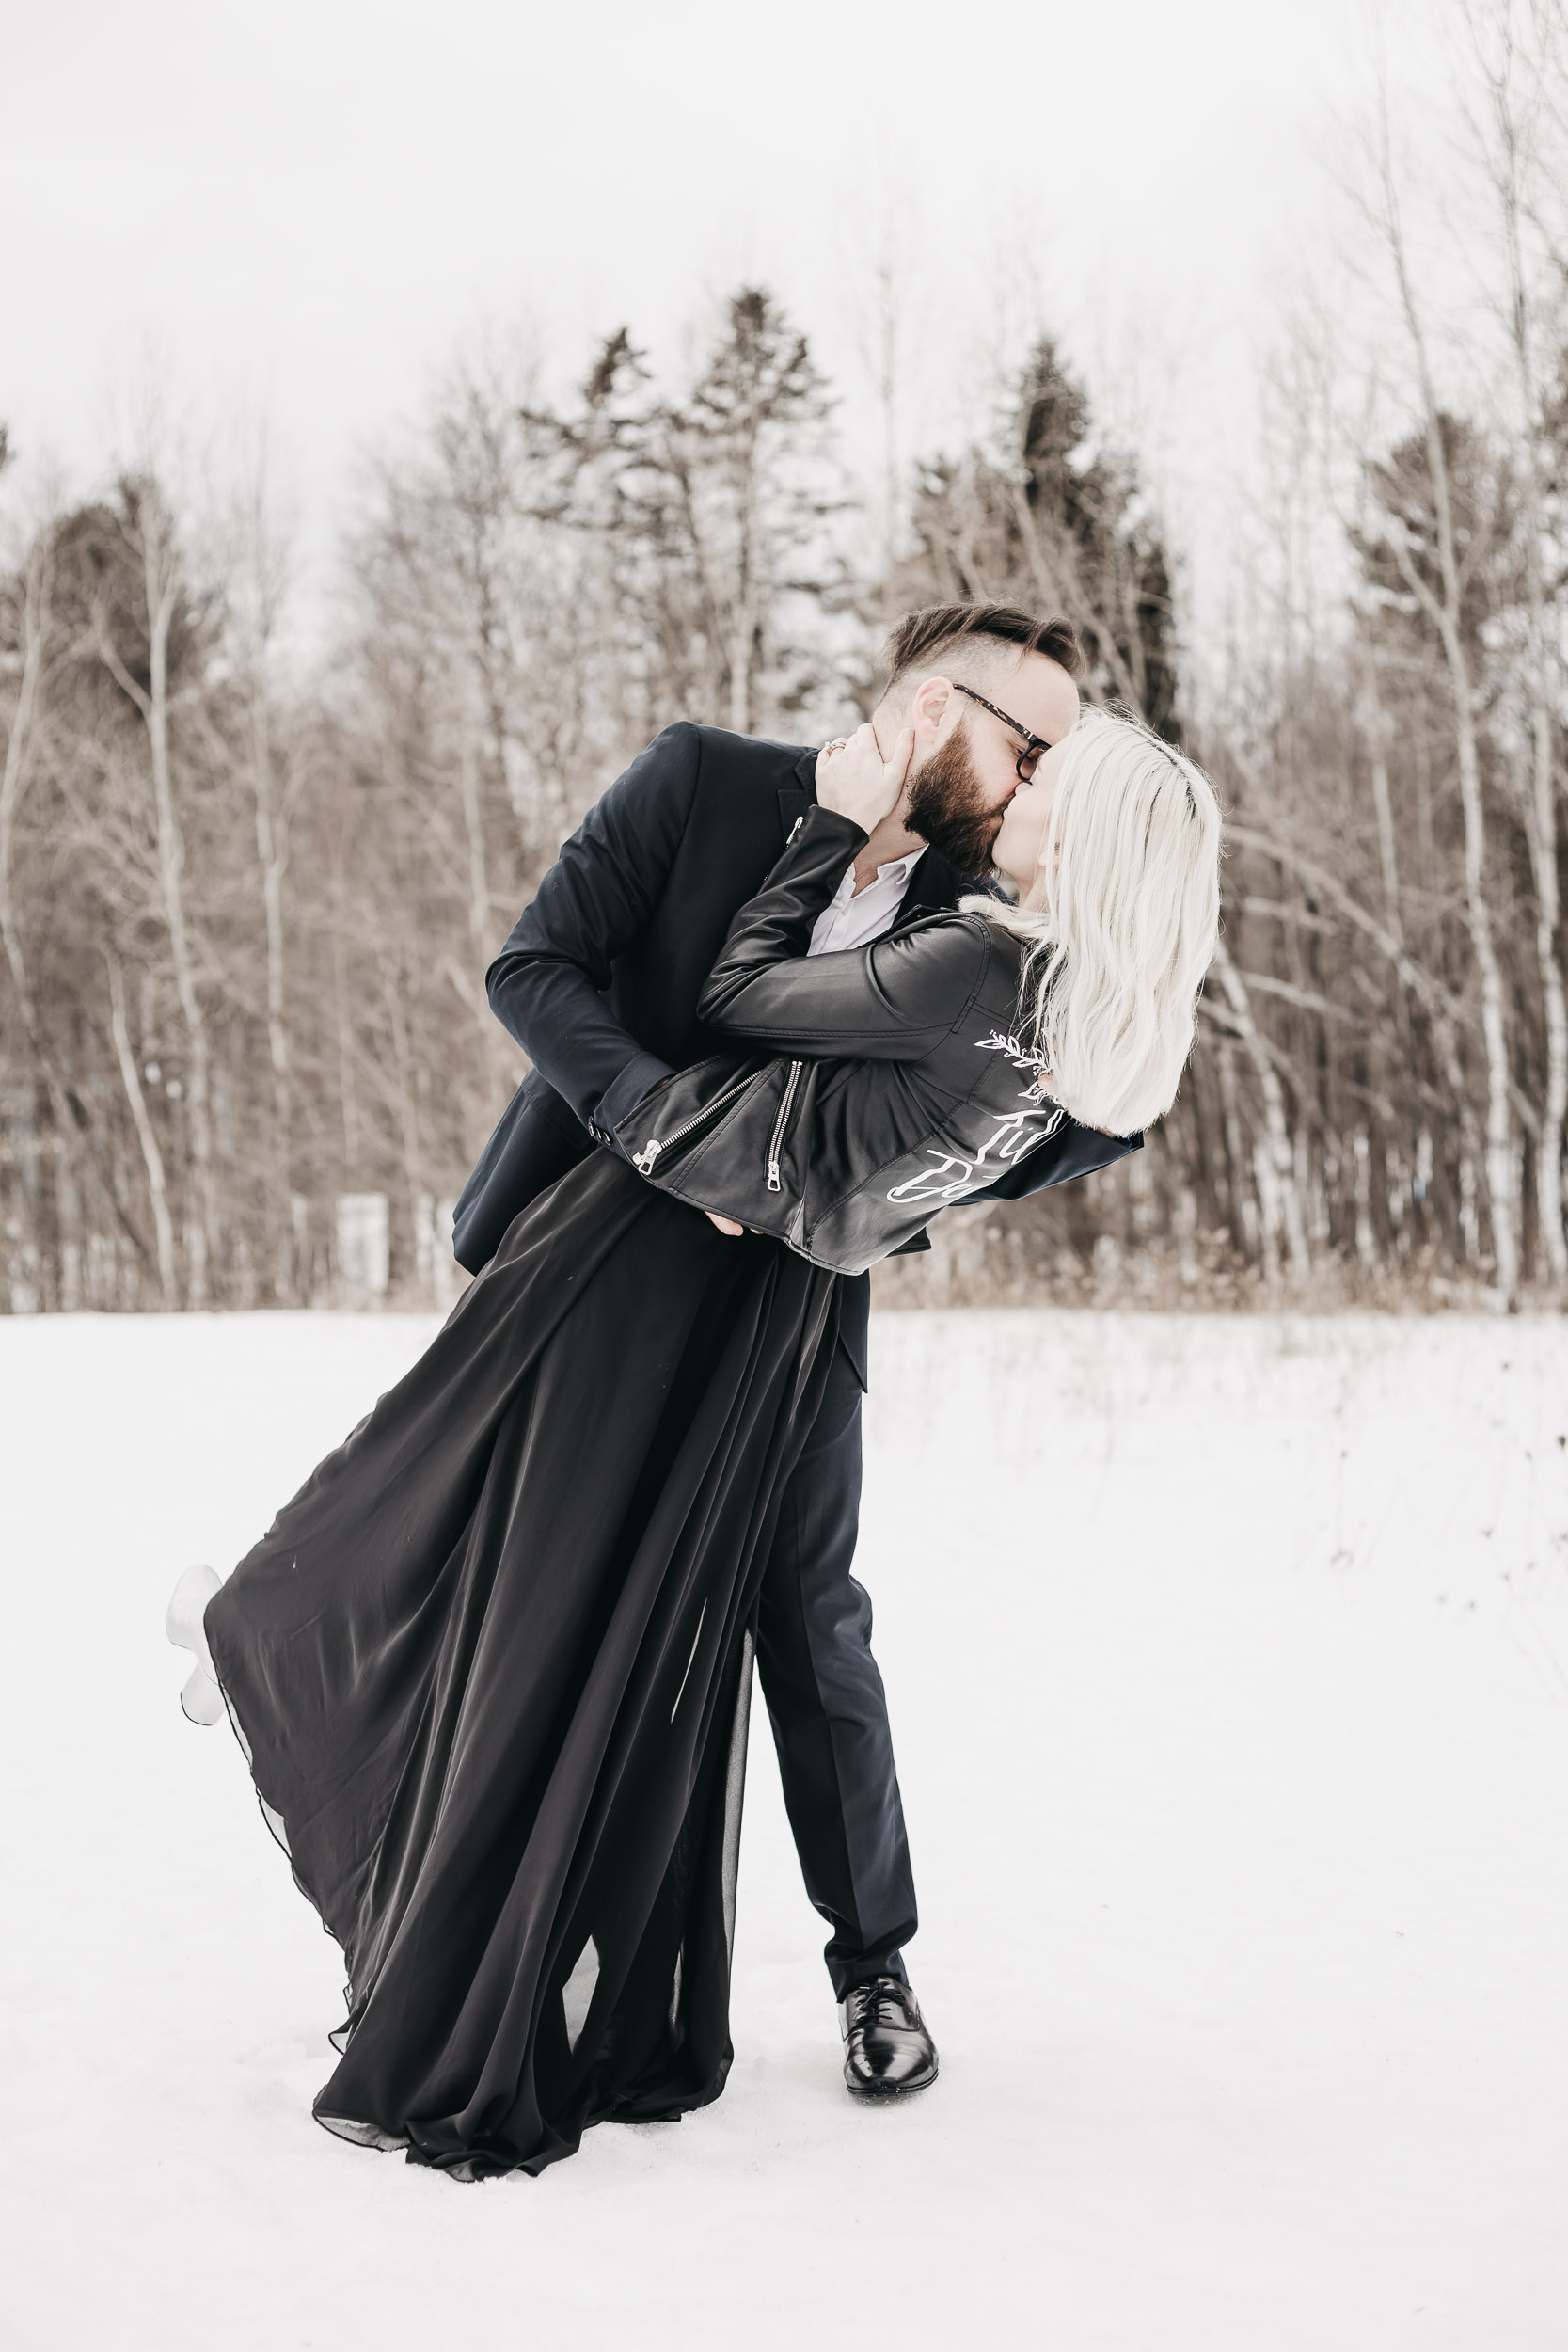 Ottawa-Elopement-Engagement-Photographer-57.jpg